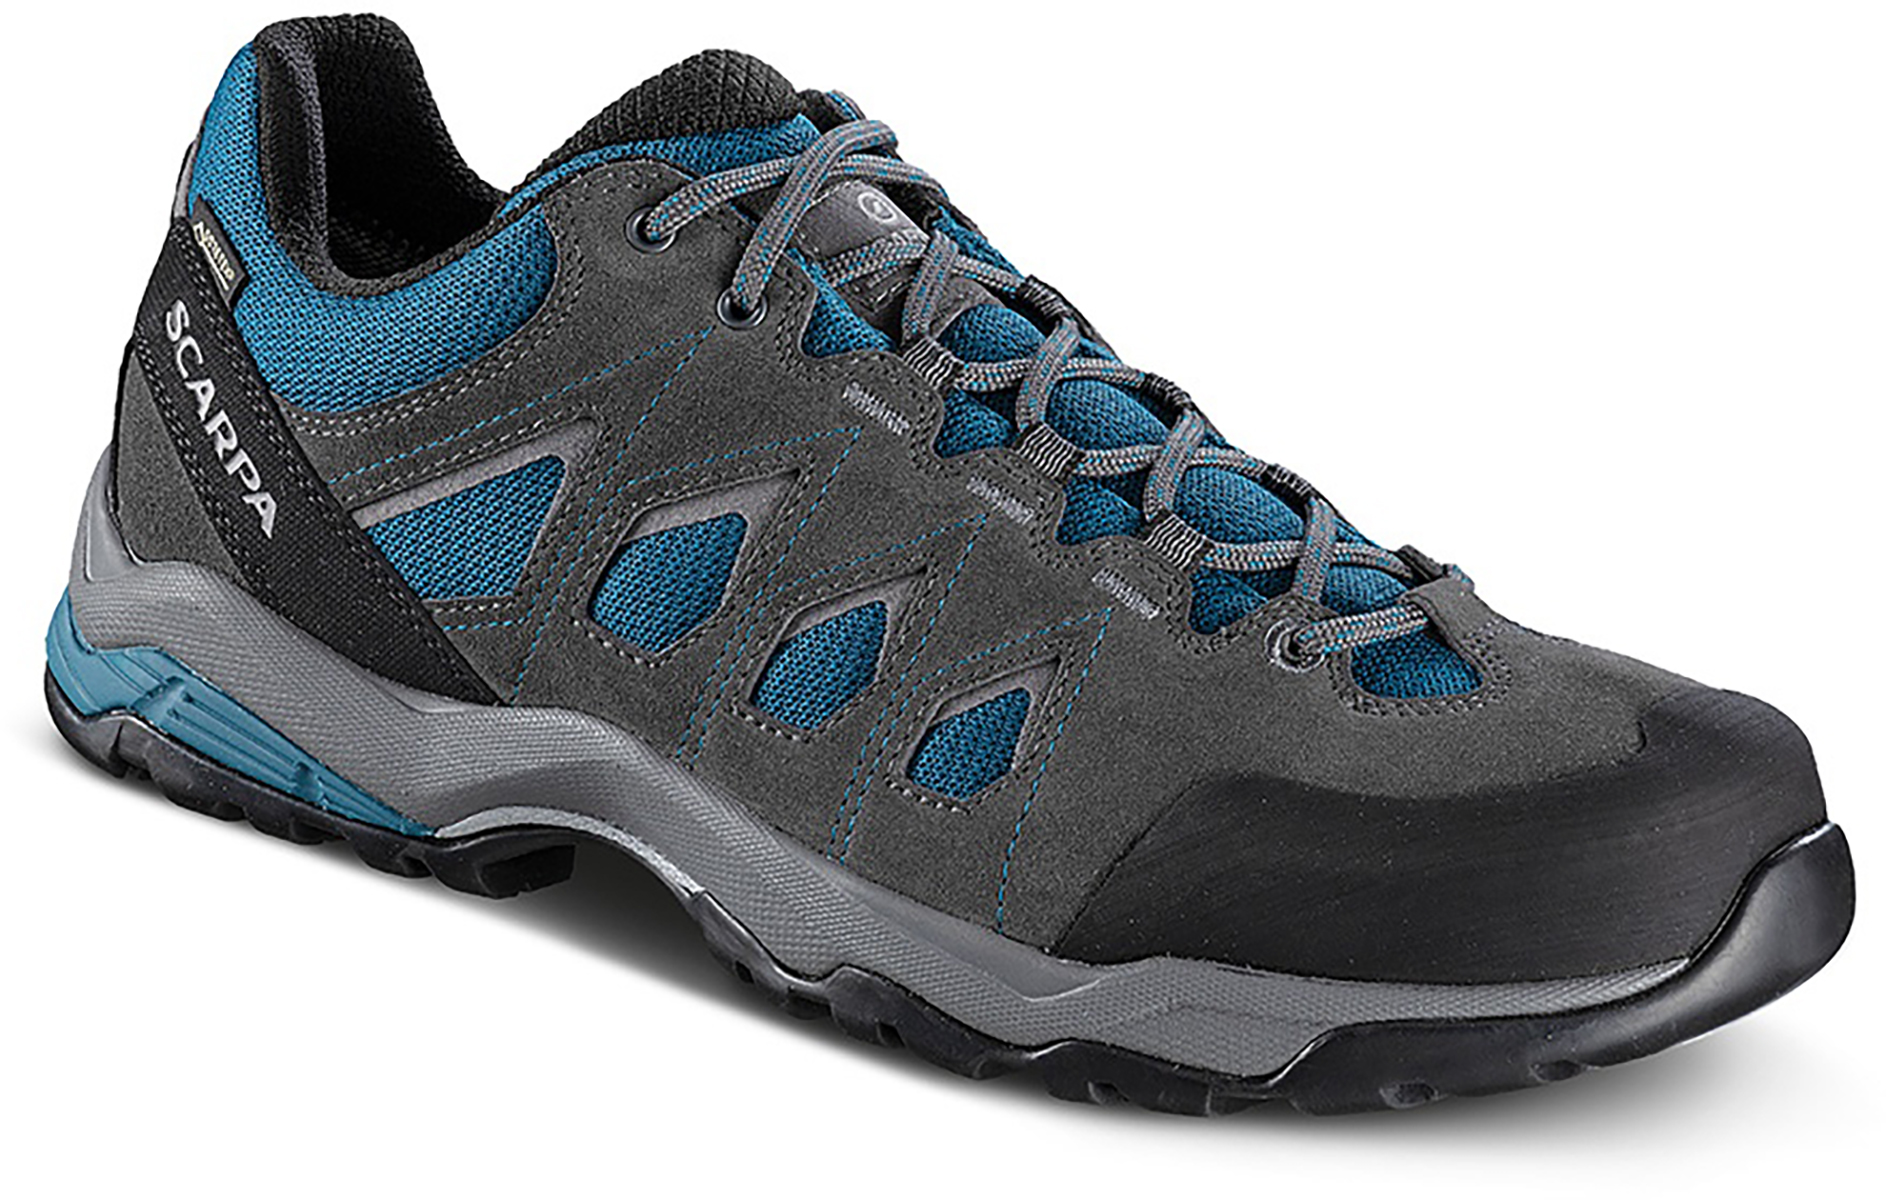 Scarpa Moraine GTX® Shoes | Shoes and overlays